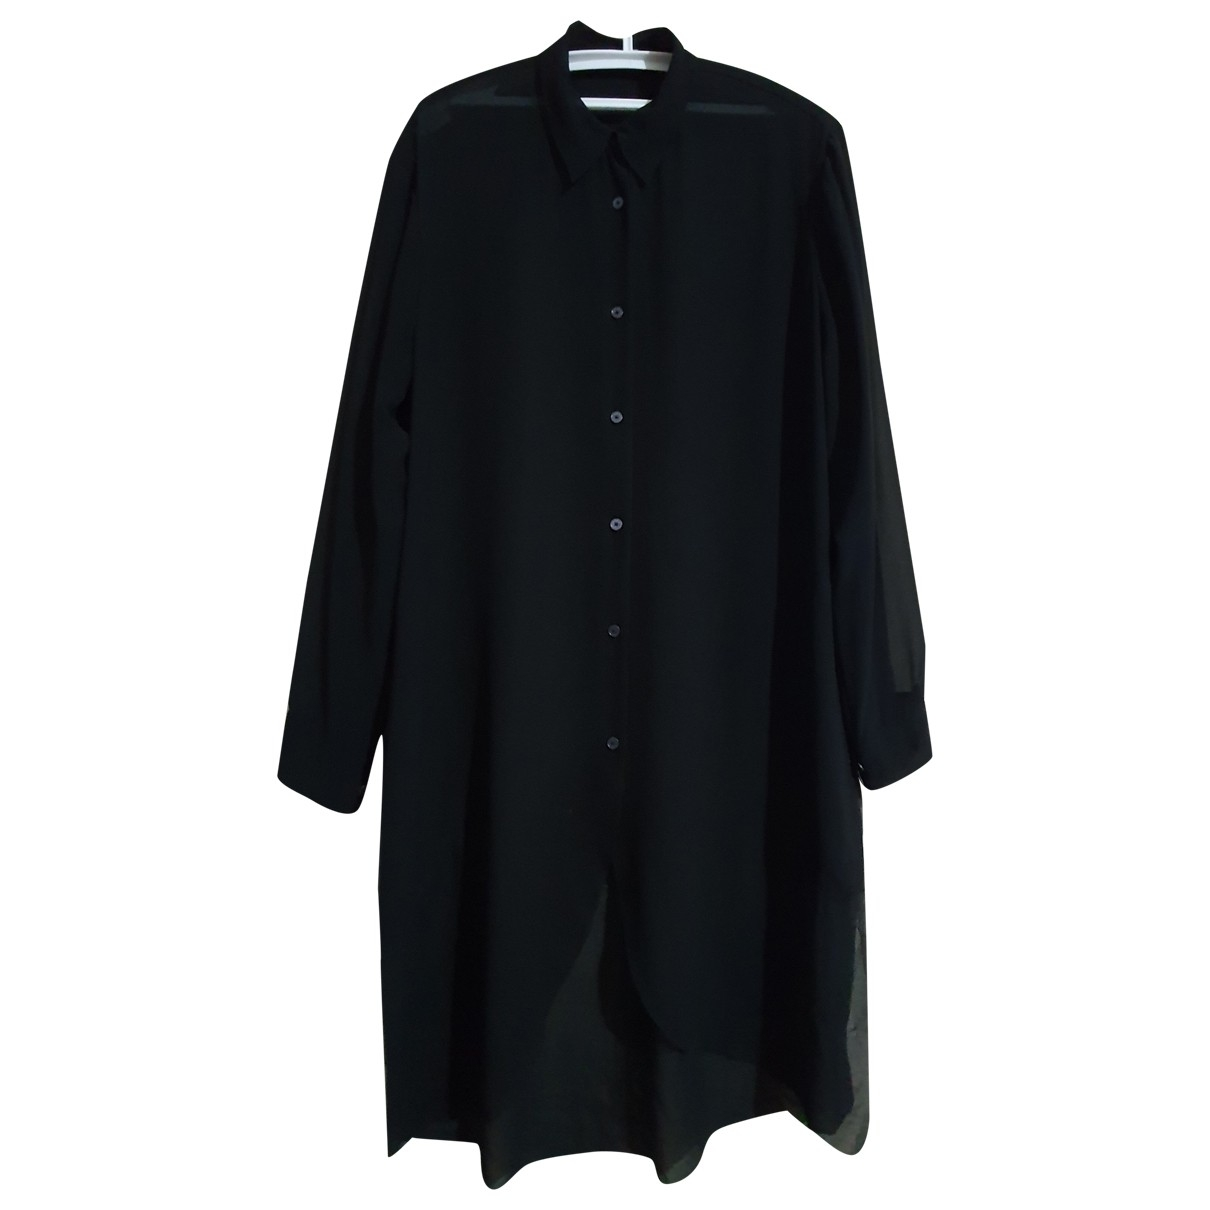 Acne Studios \N Top in  Schwarz Polyester